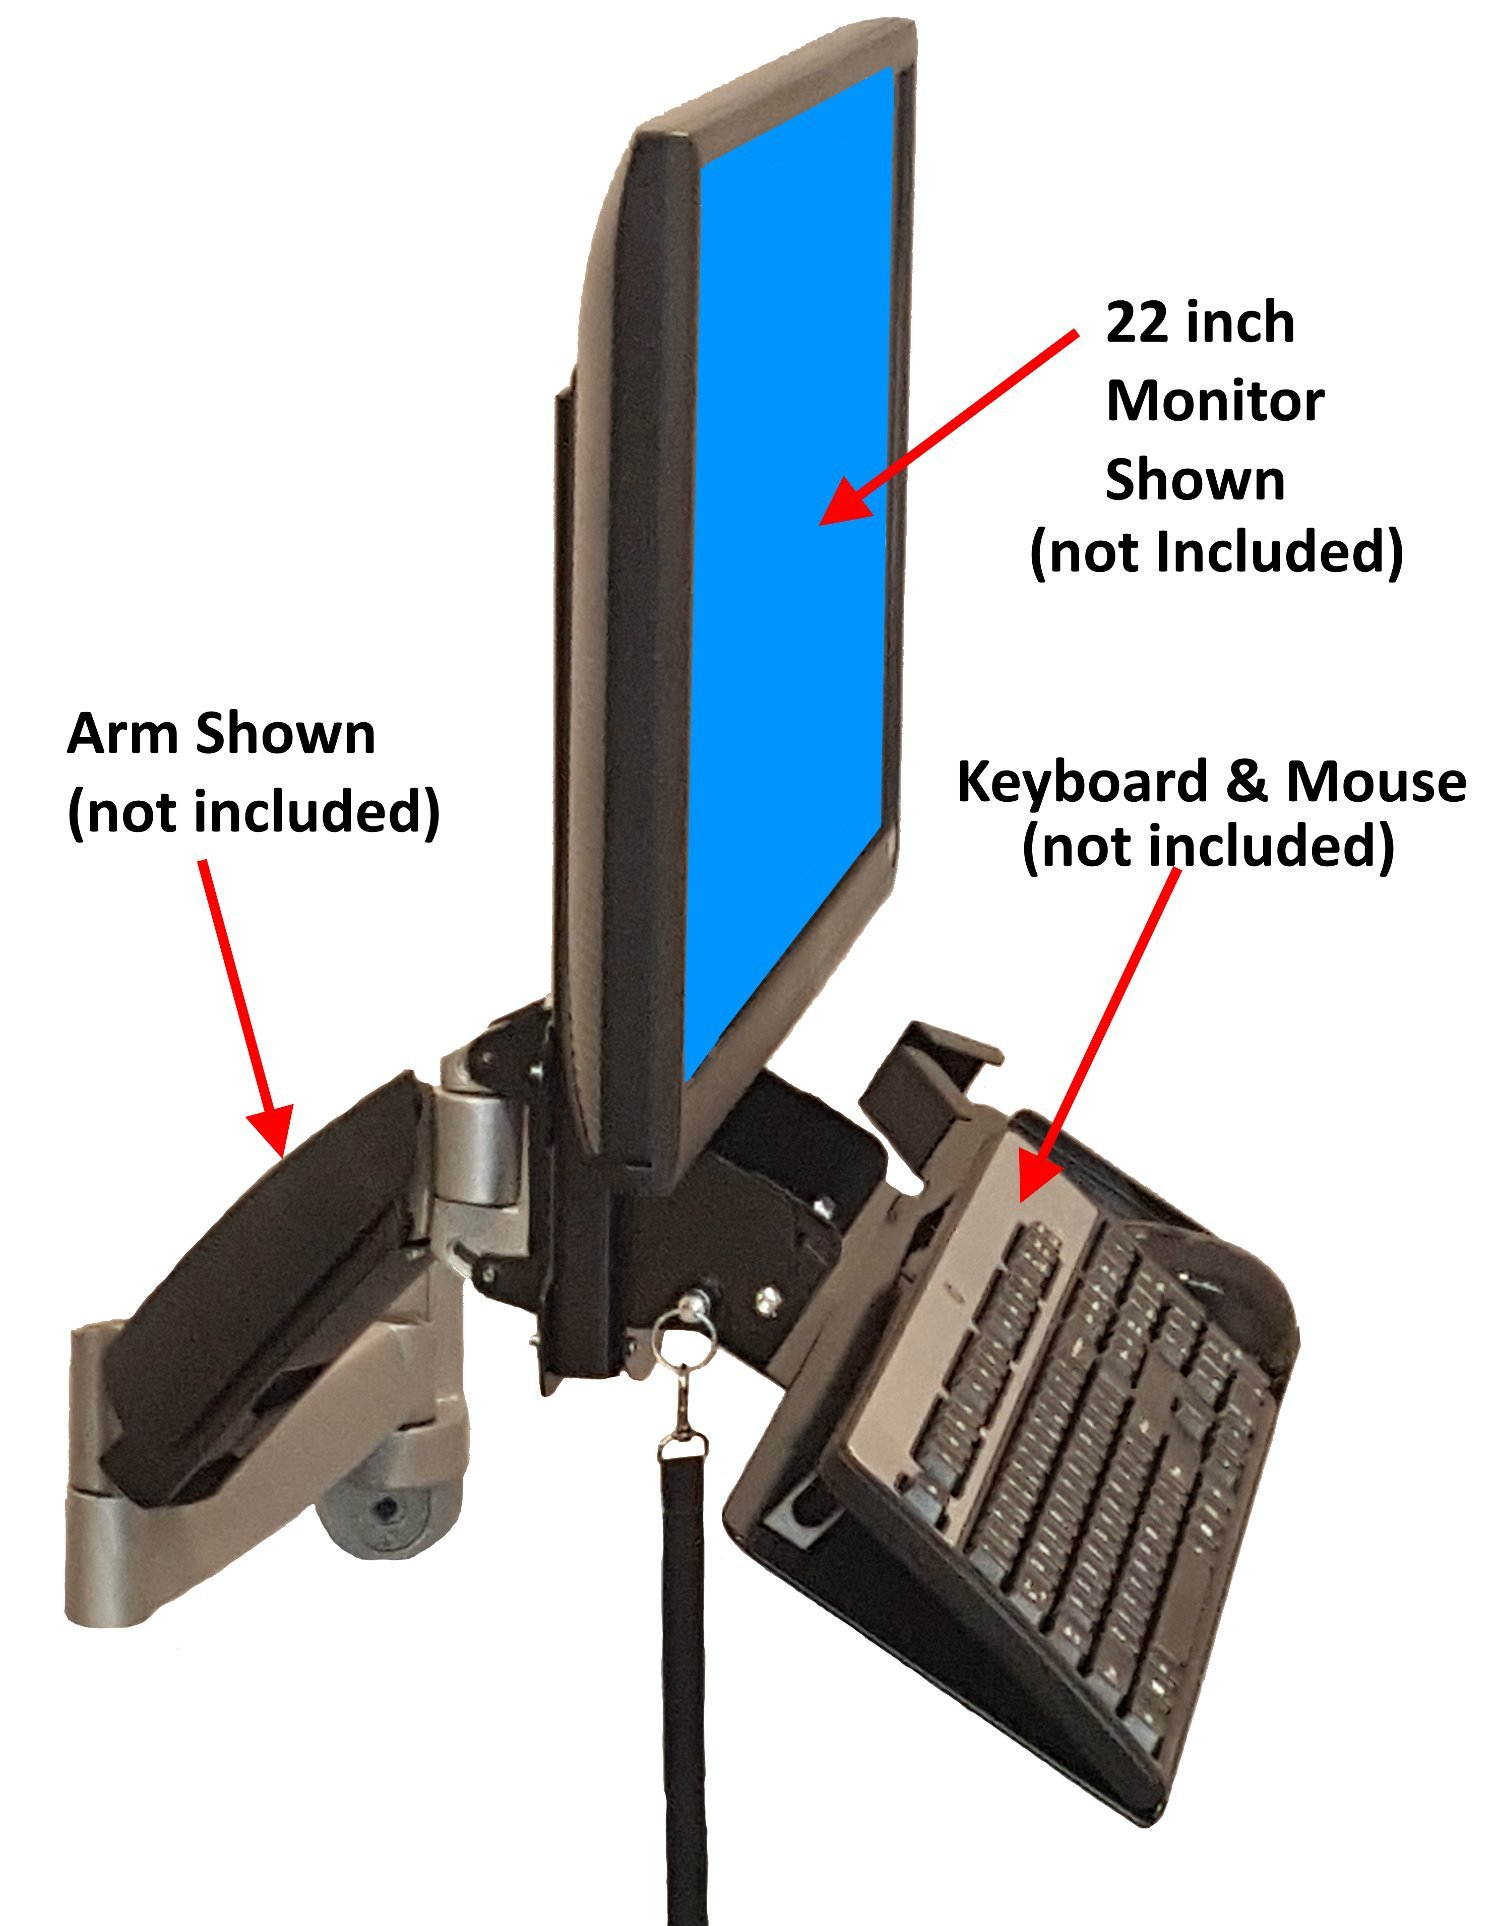 SDS iMount 4.0 Keyboard & Monitor Wall Mount w/ Tilt, Fold Away Adjustable Tray System 7x18 Tray + Mouse Ext. (Mounts Directly To The Wall) Manufactured in Michigan